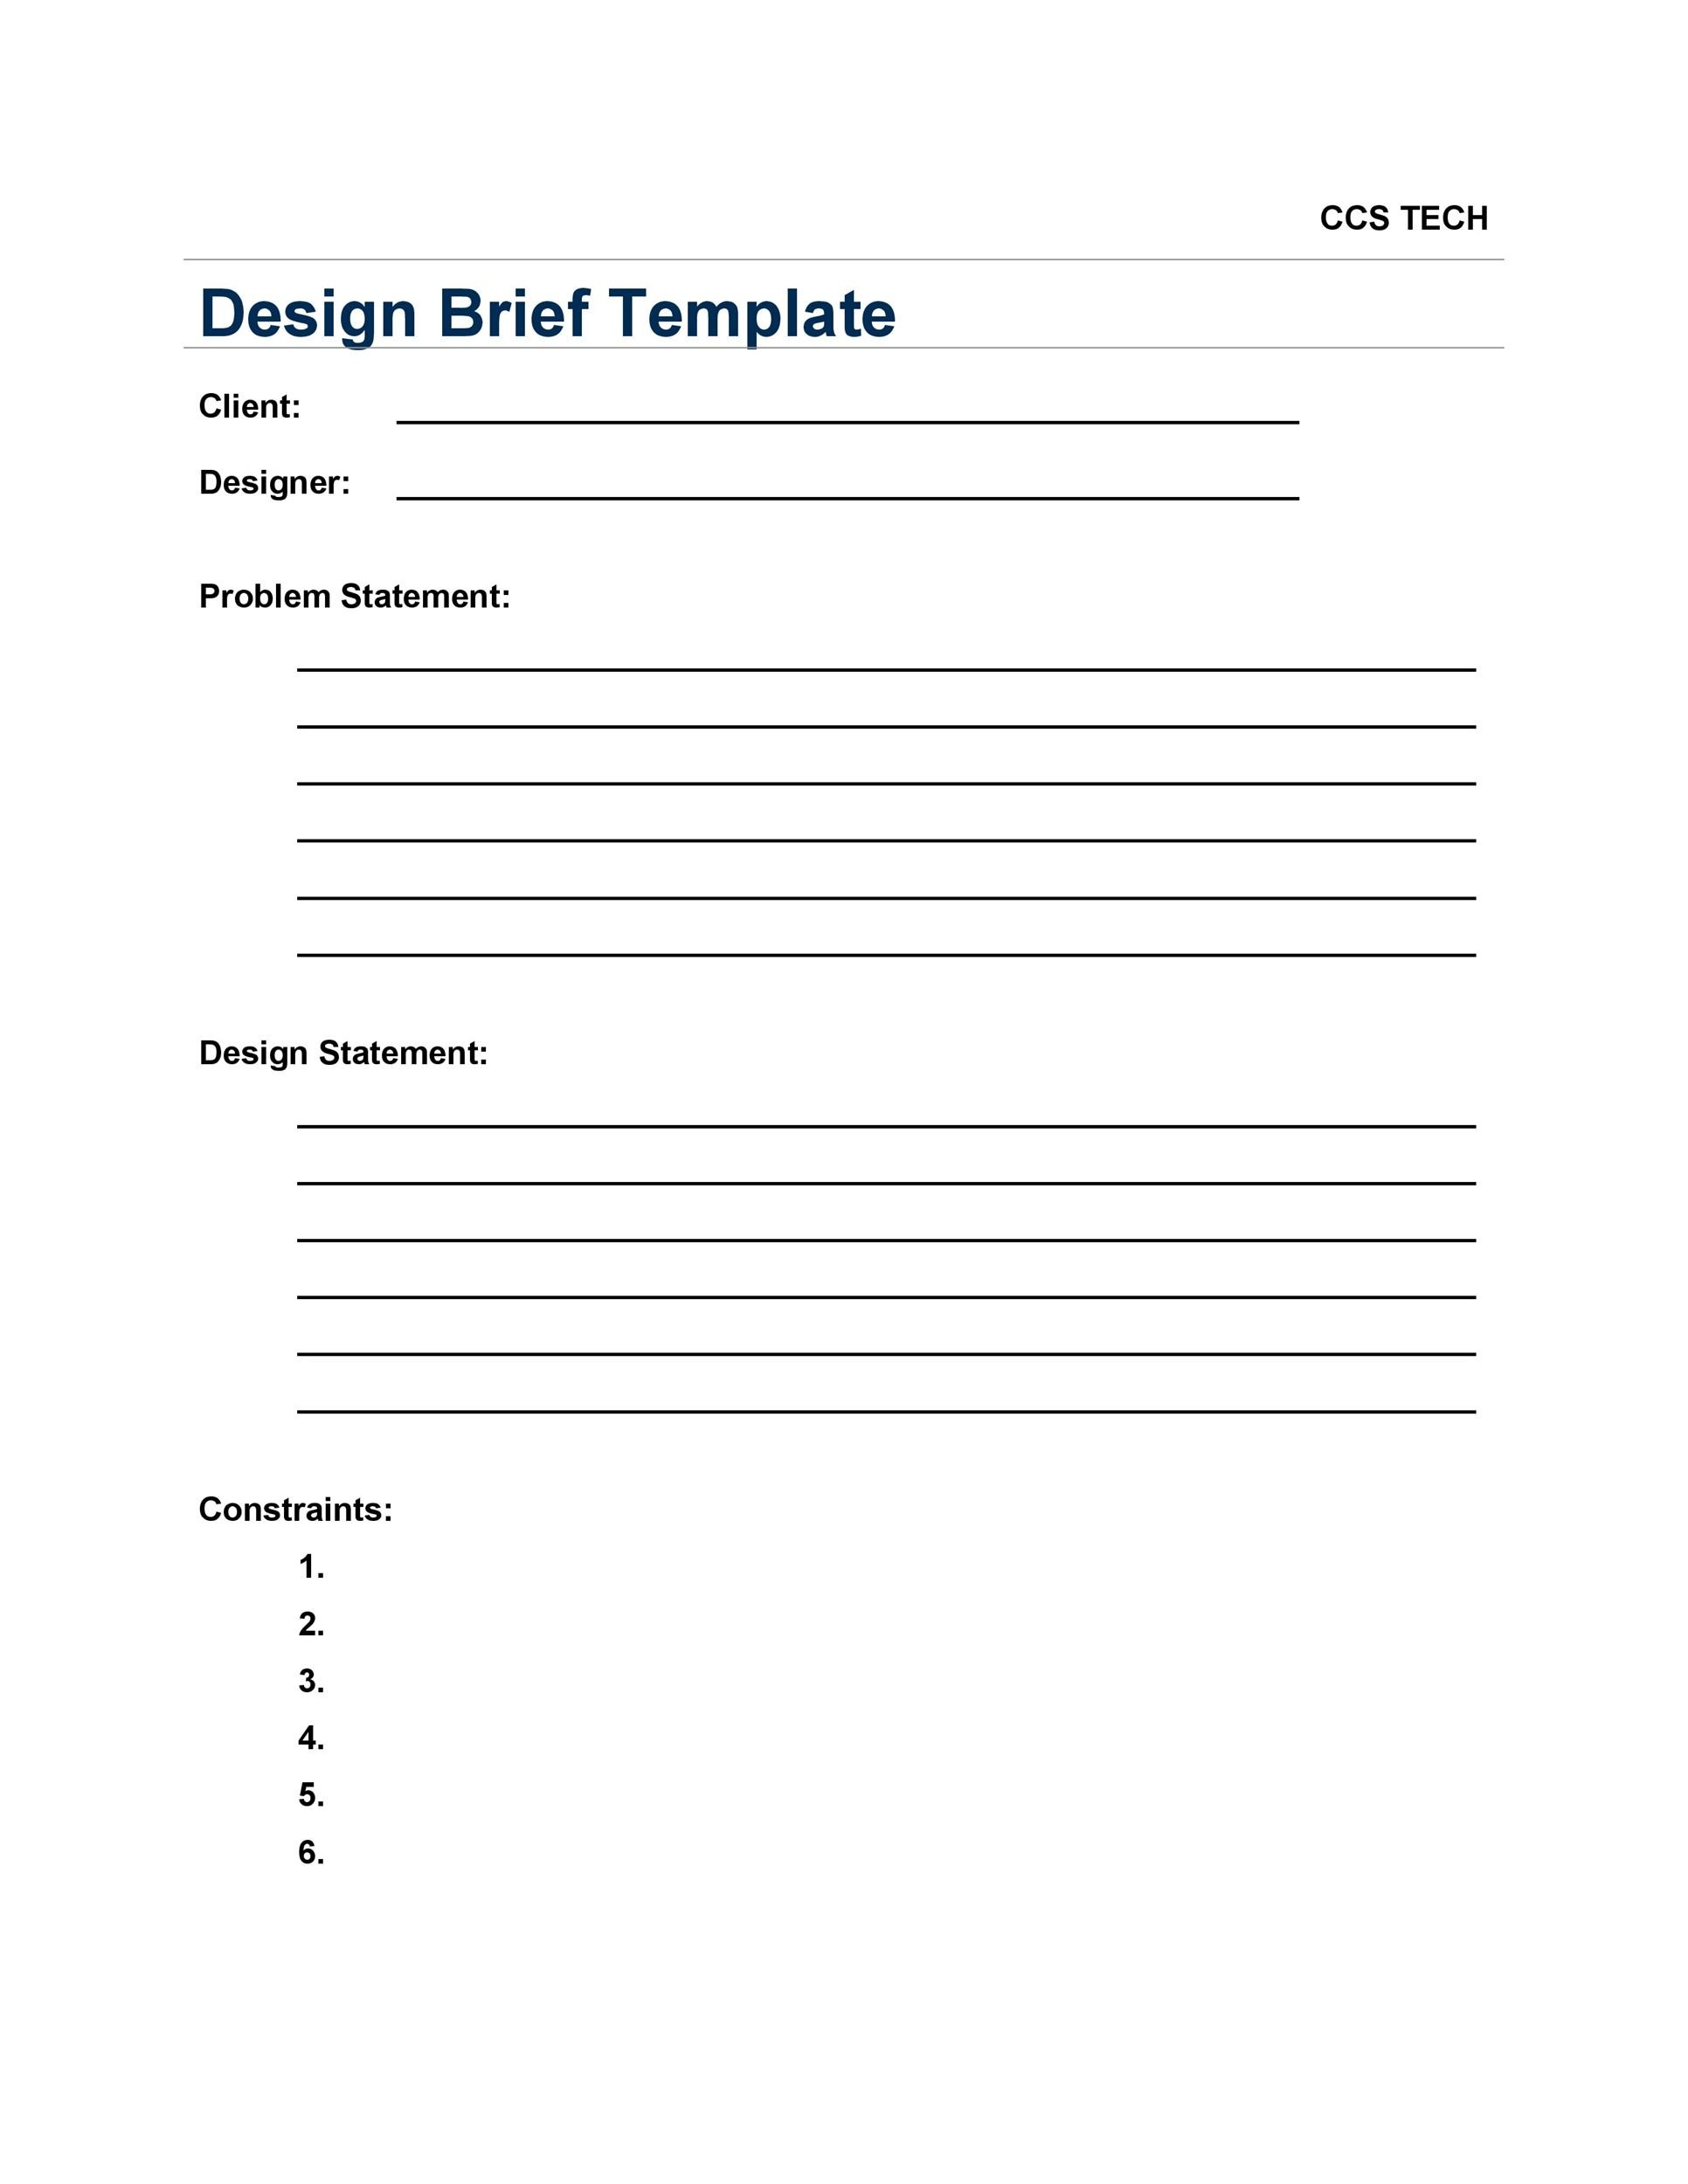 Free design brief template 26